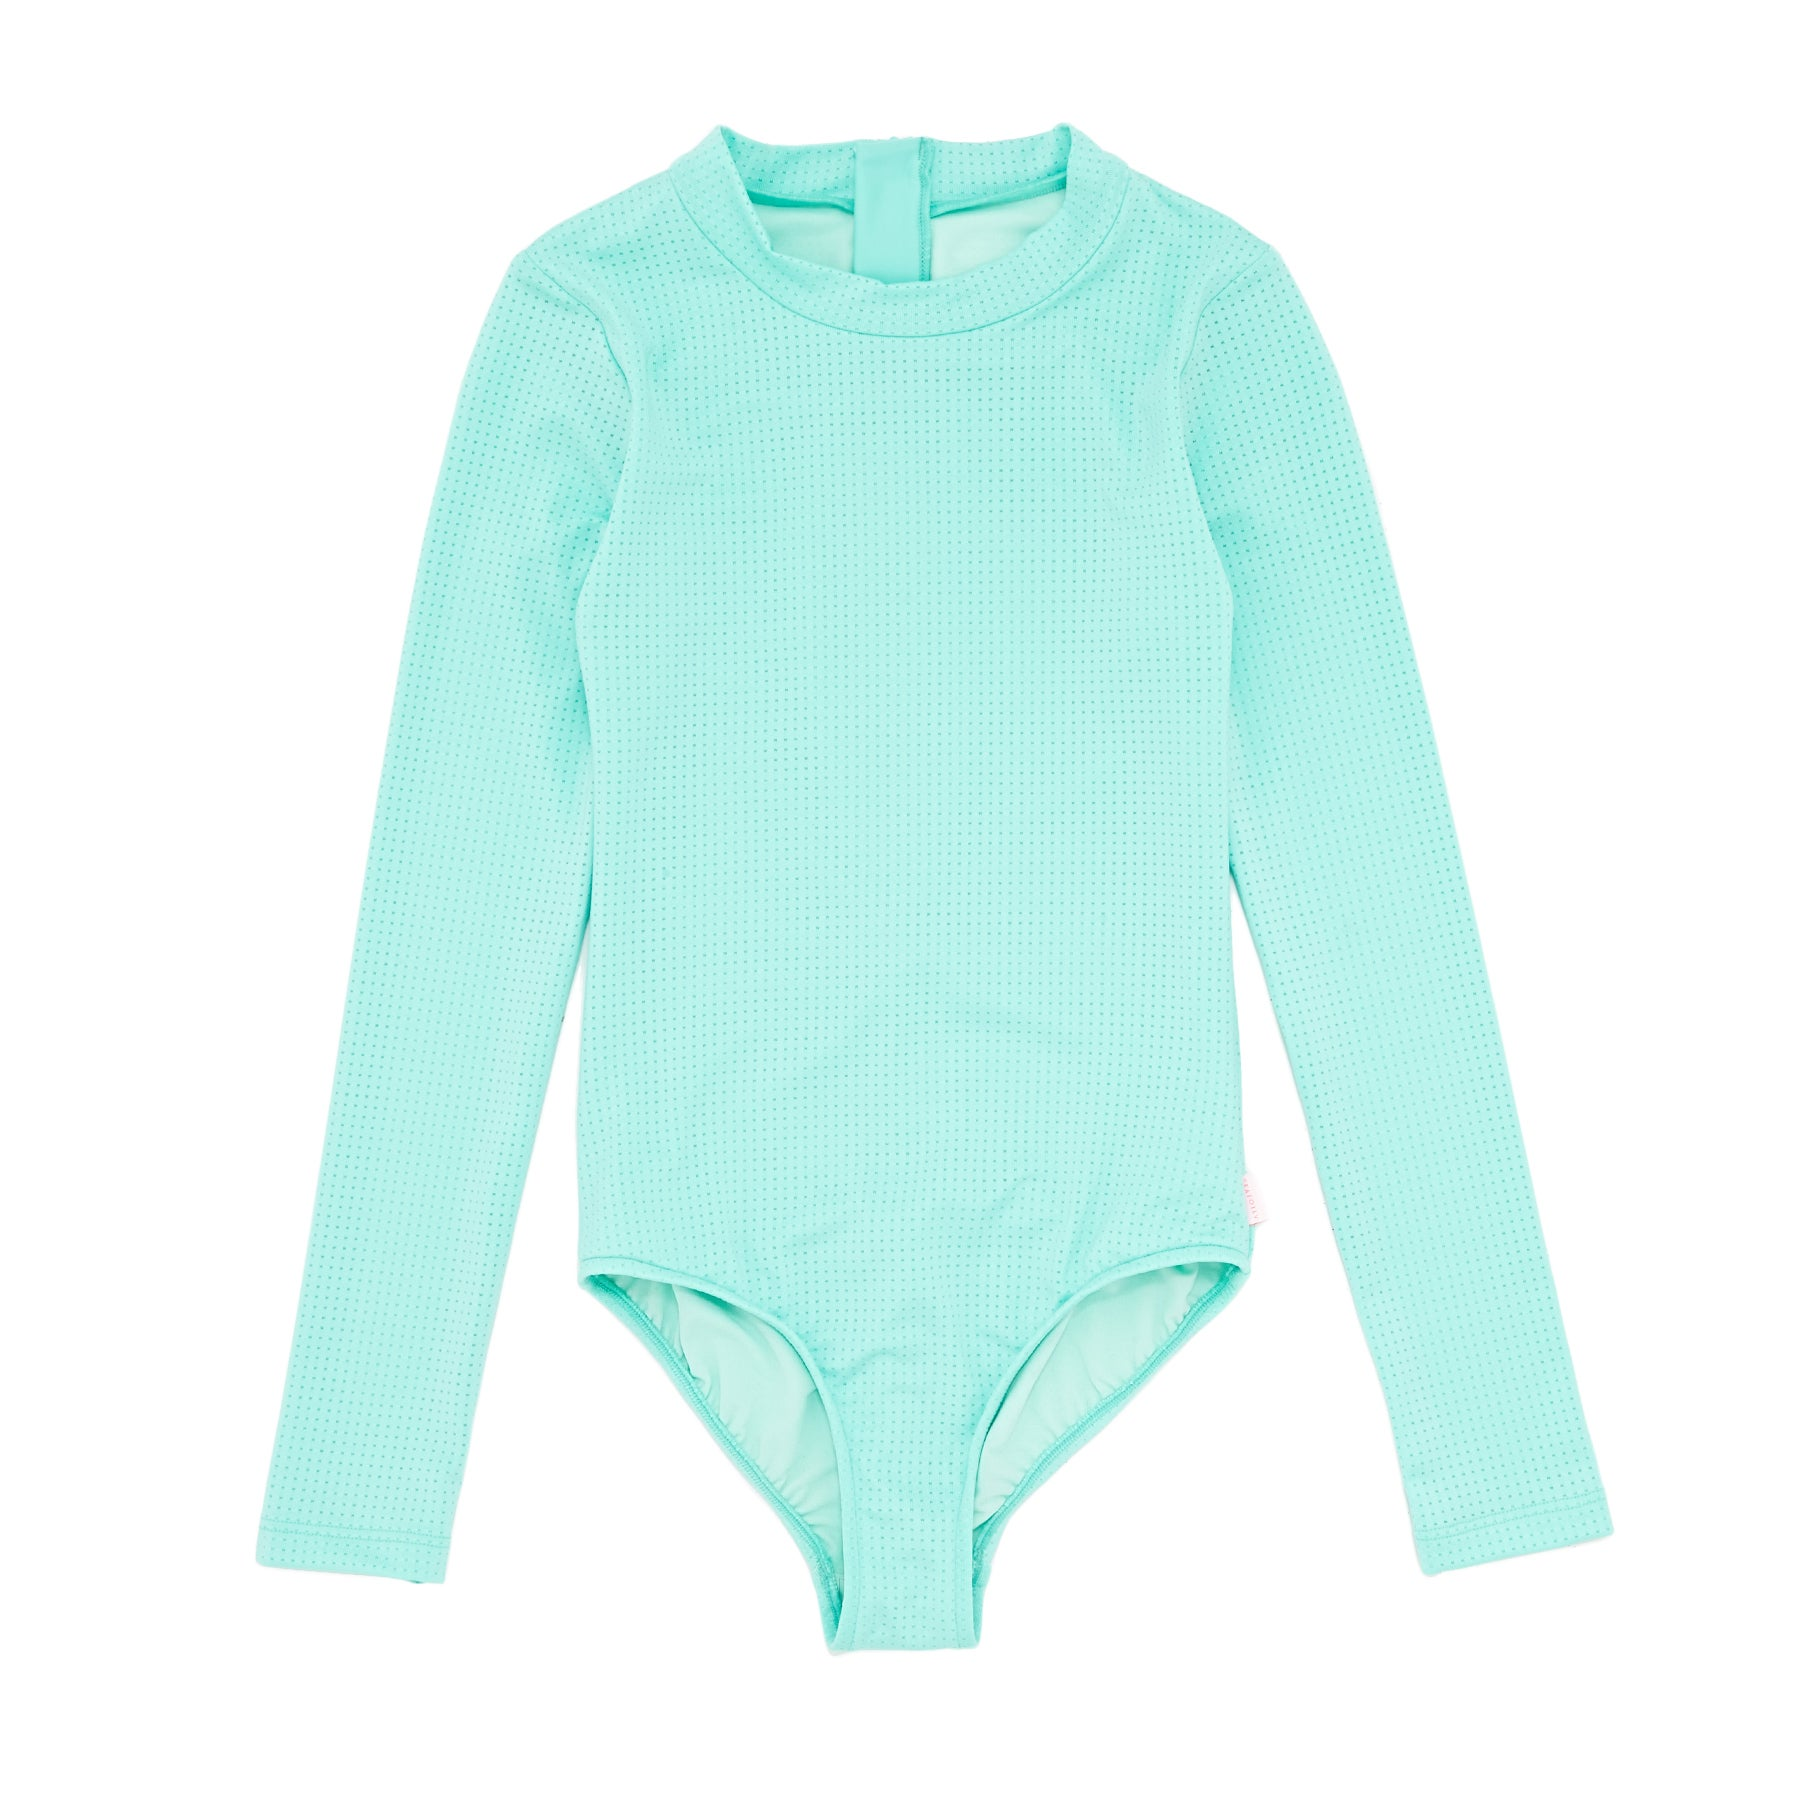 Seafolly Summer Essential L/s Surf Tank Girls Swimsuit - Emerald Blue